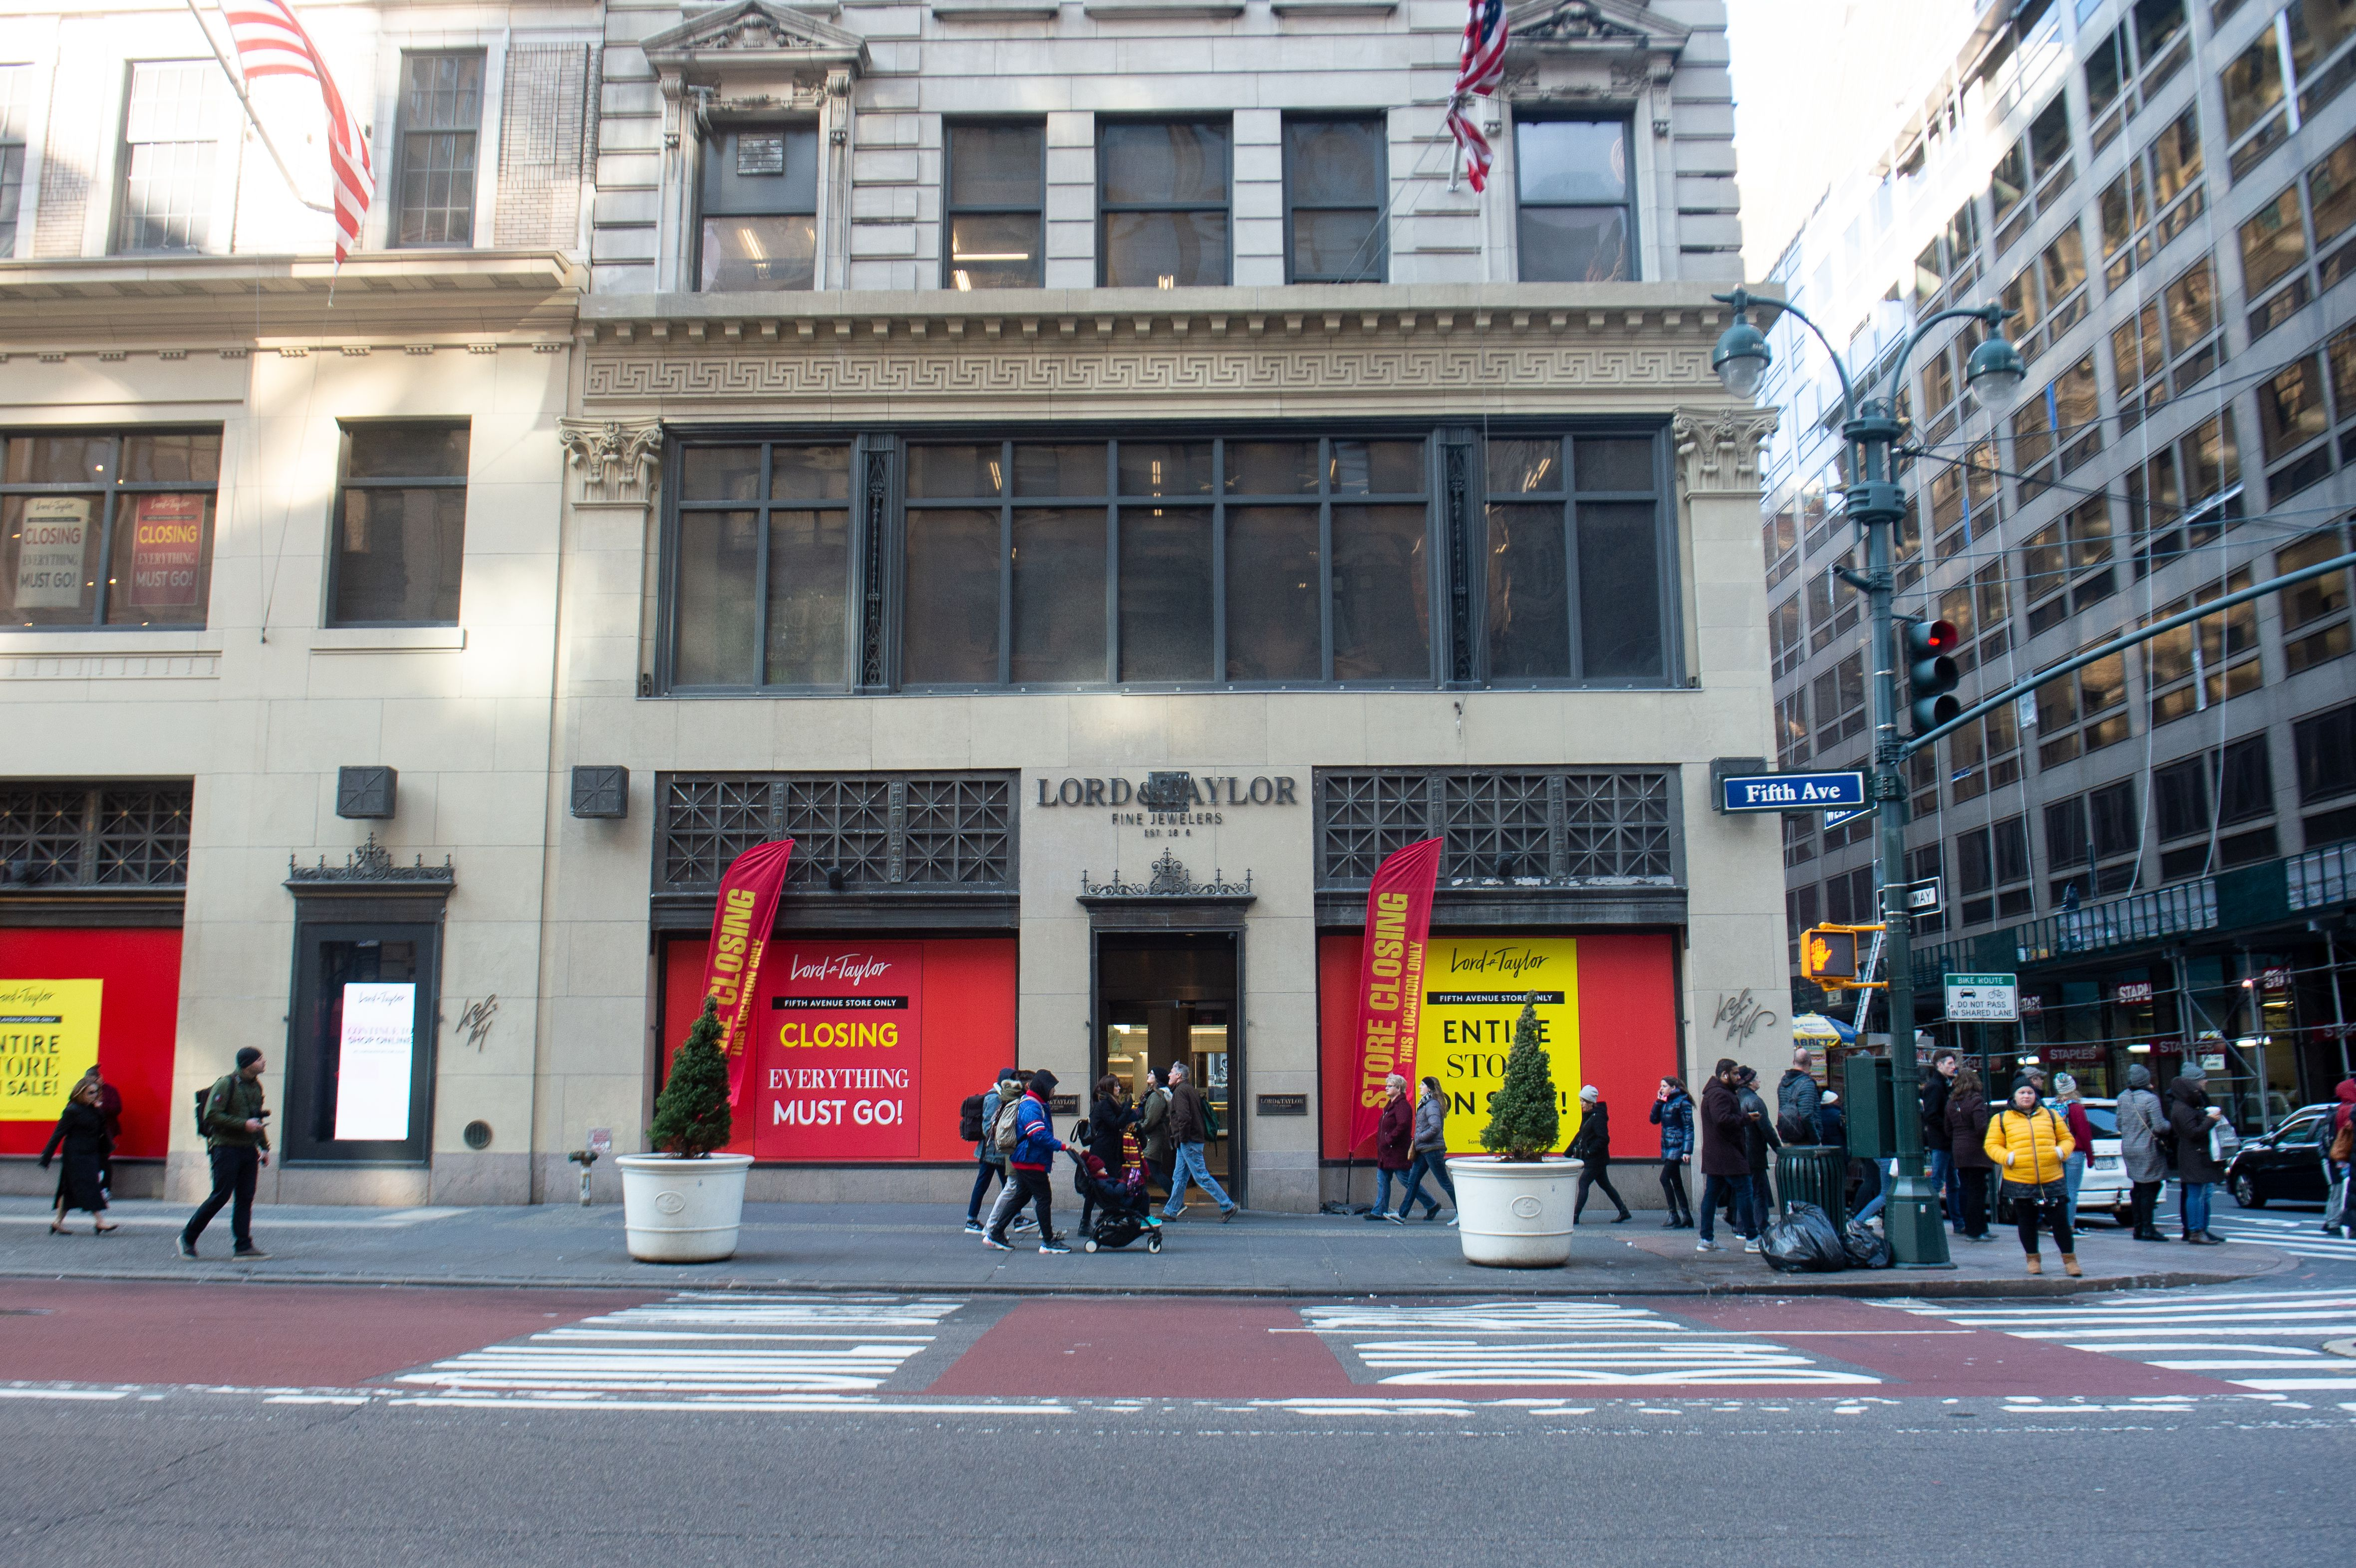 The Lord & Taylor 5th Ave store closing.